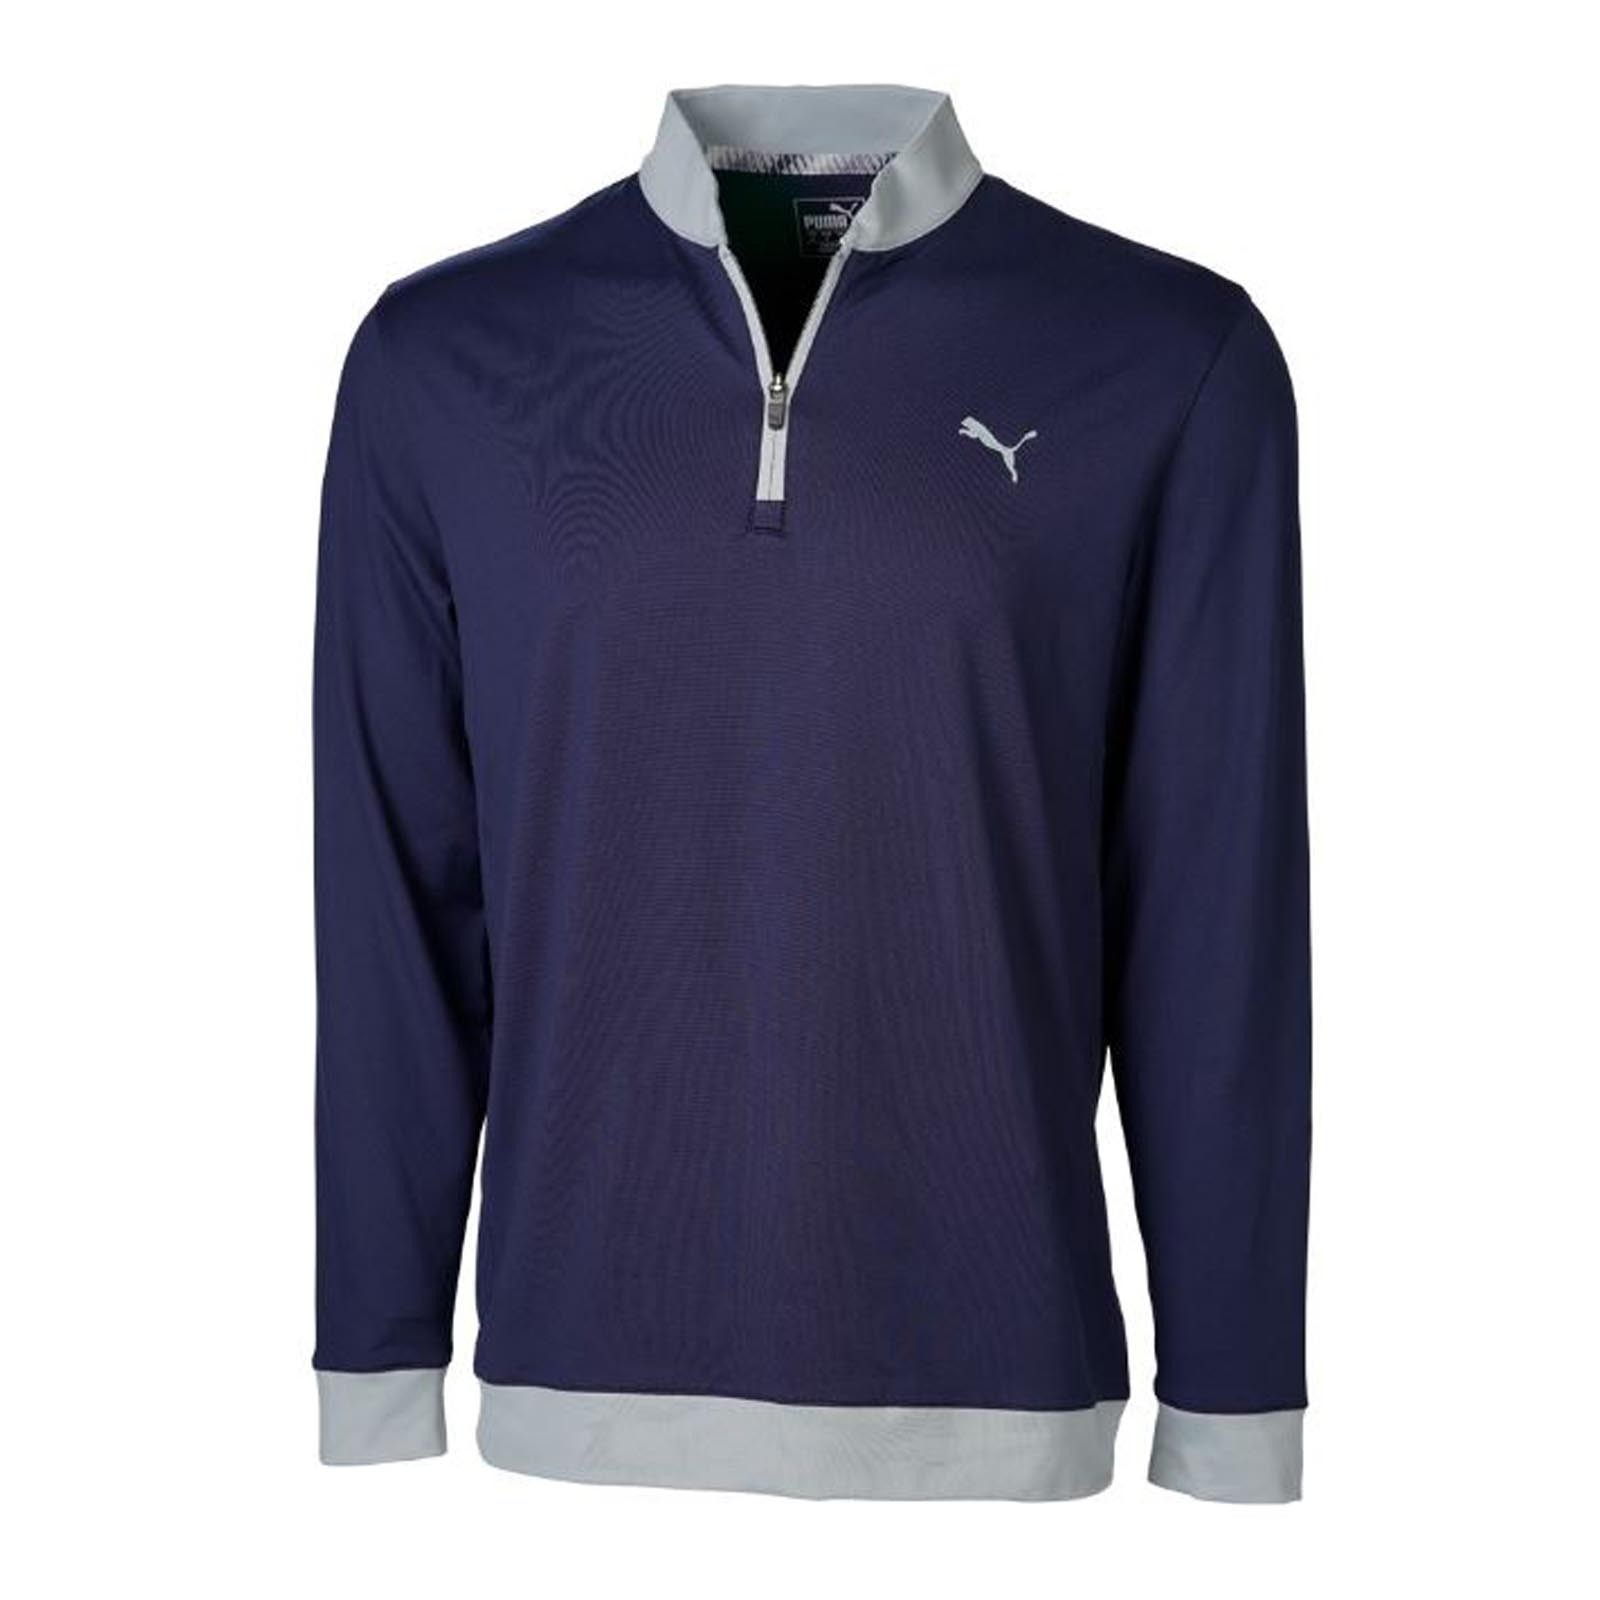 Puma Stealth 1/4 Zip Tops